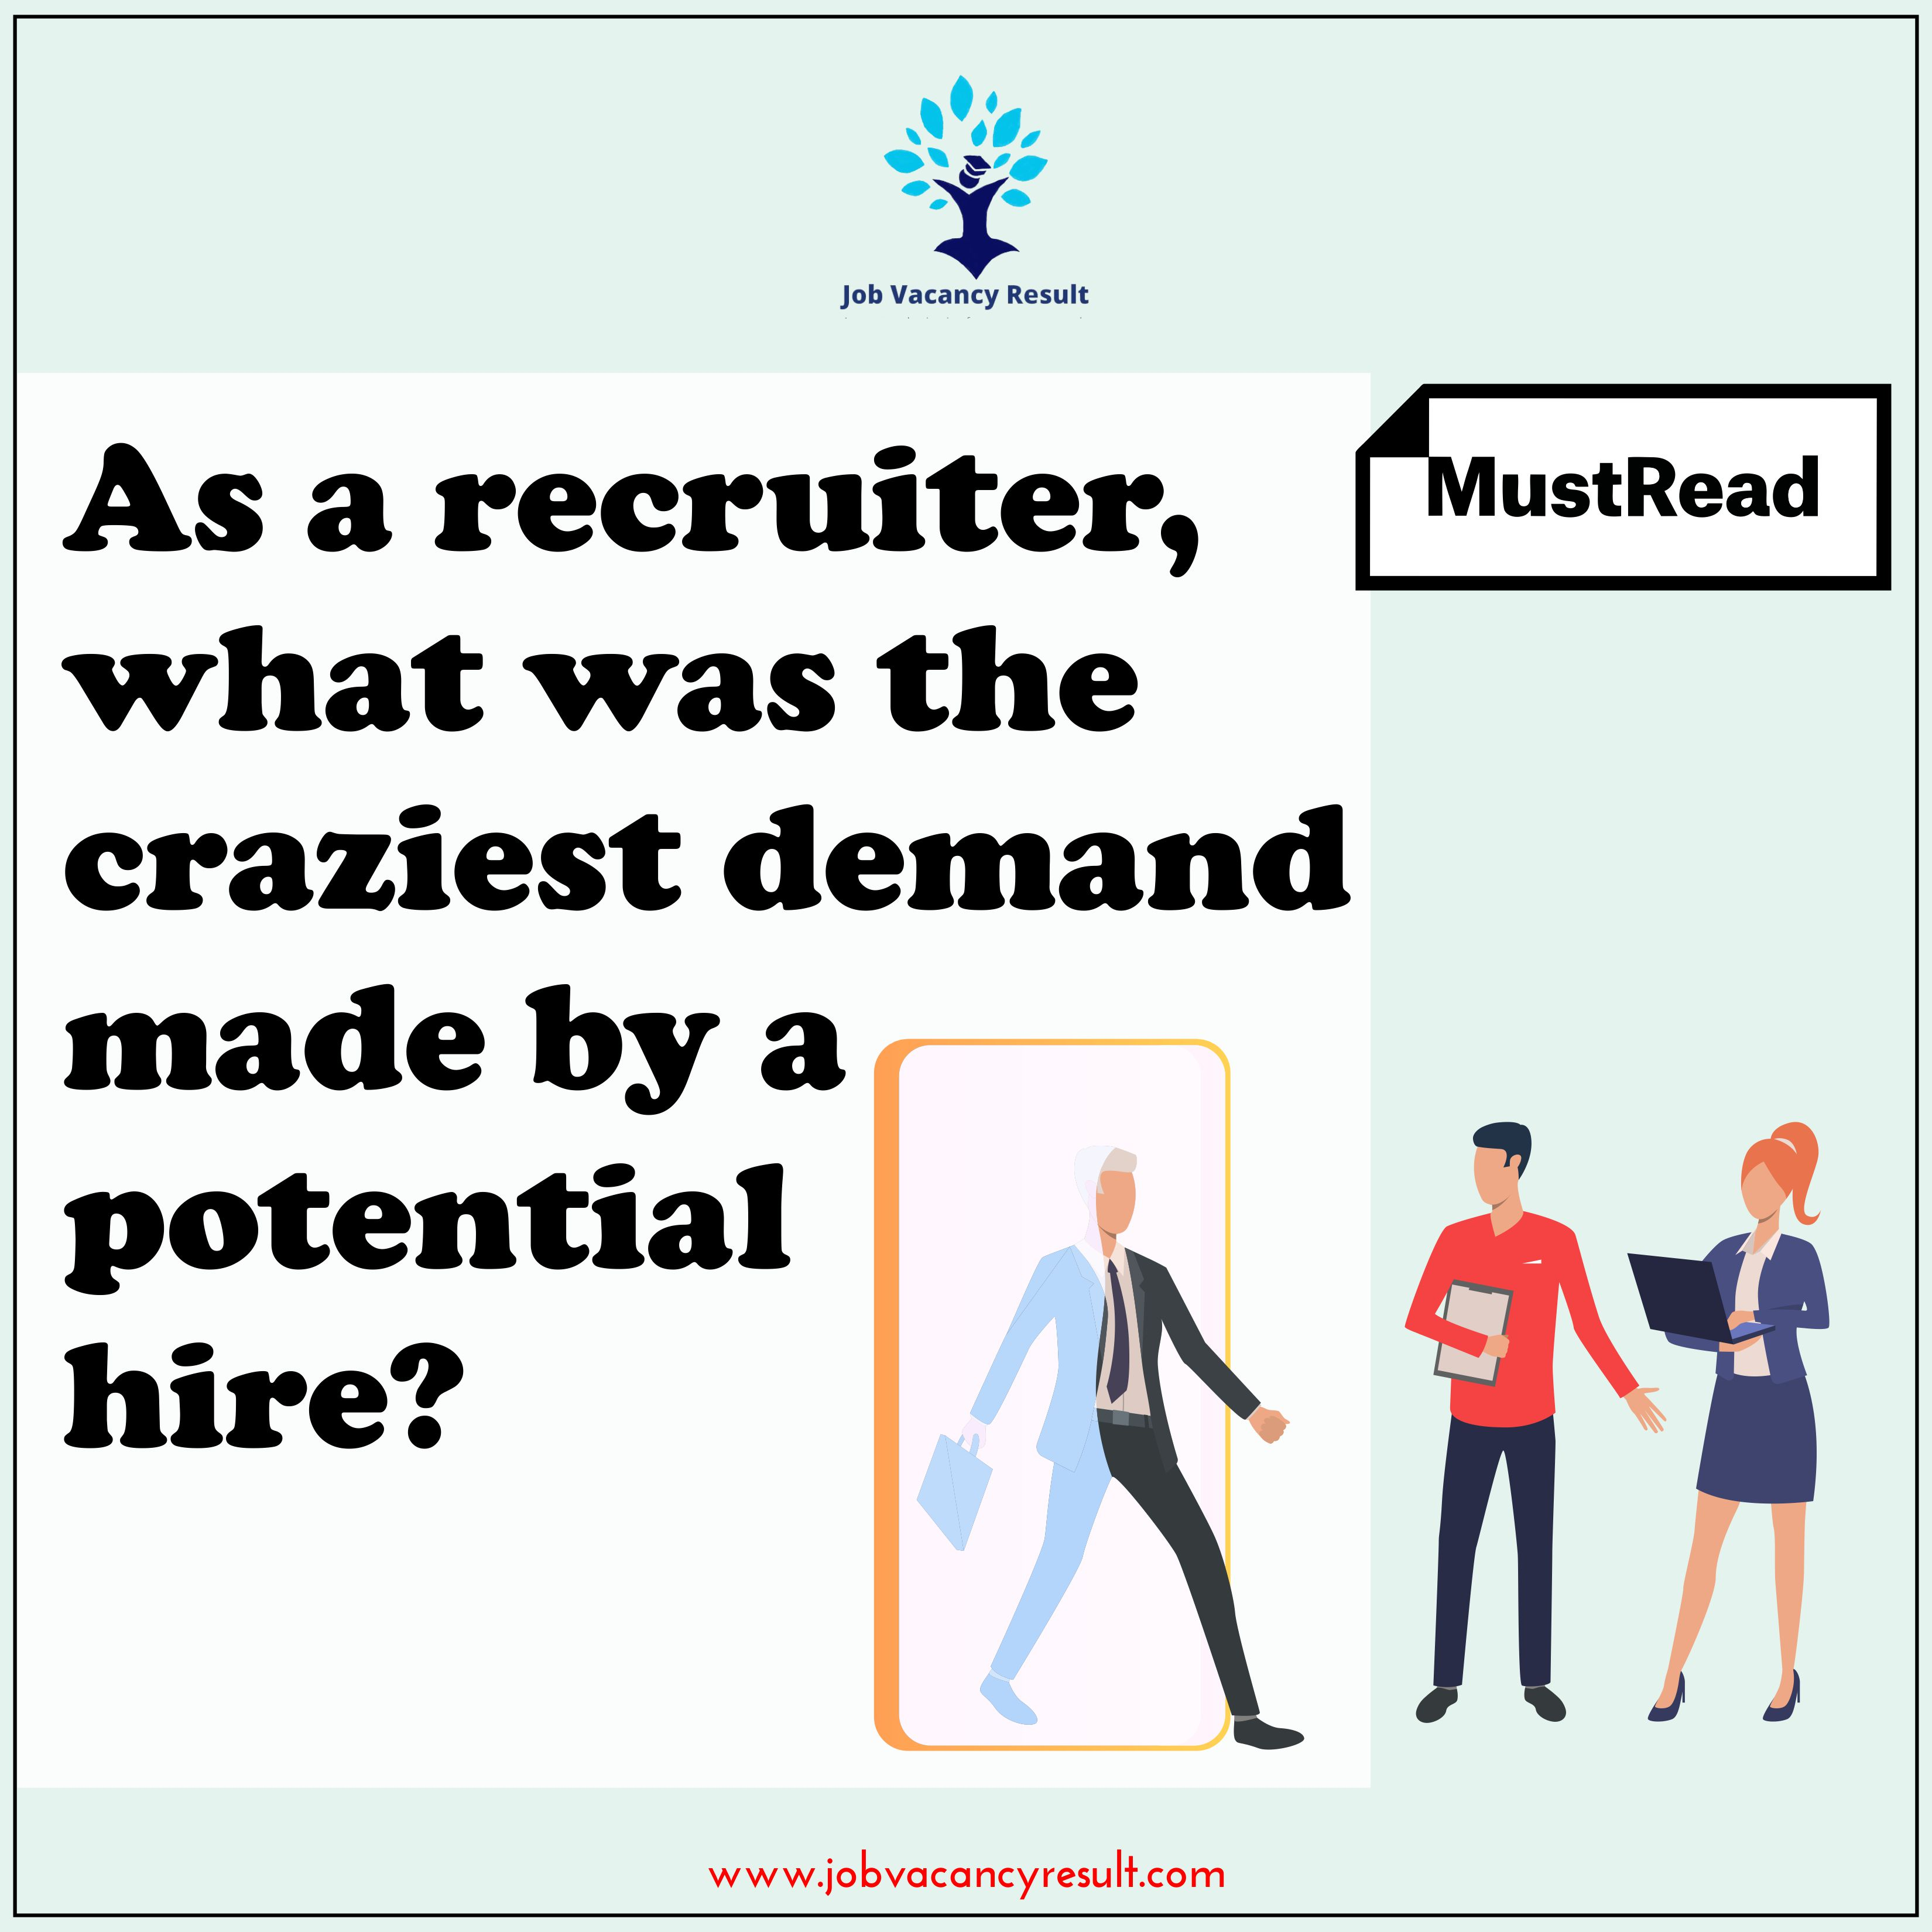 As a recruiter, what was the craziest demand made by a potential hire?